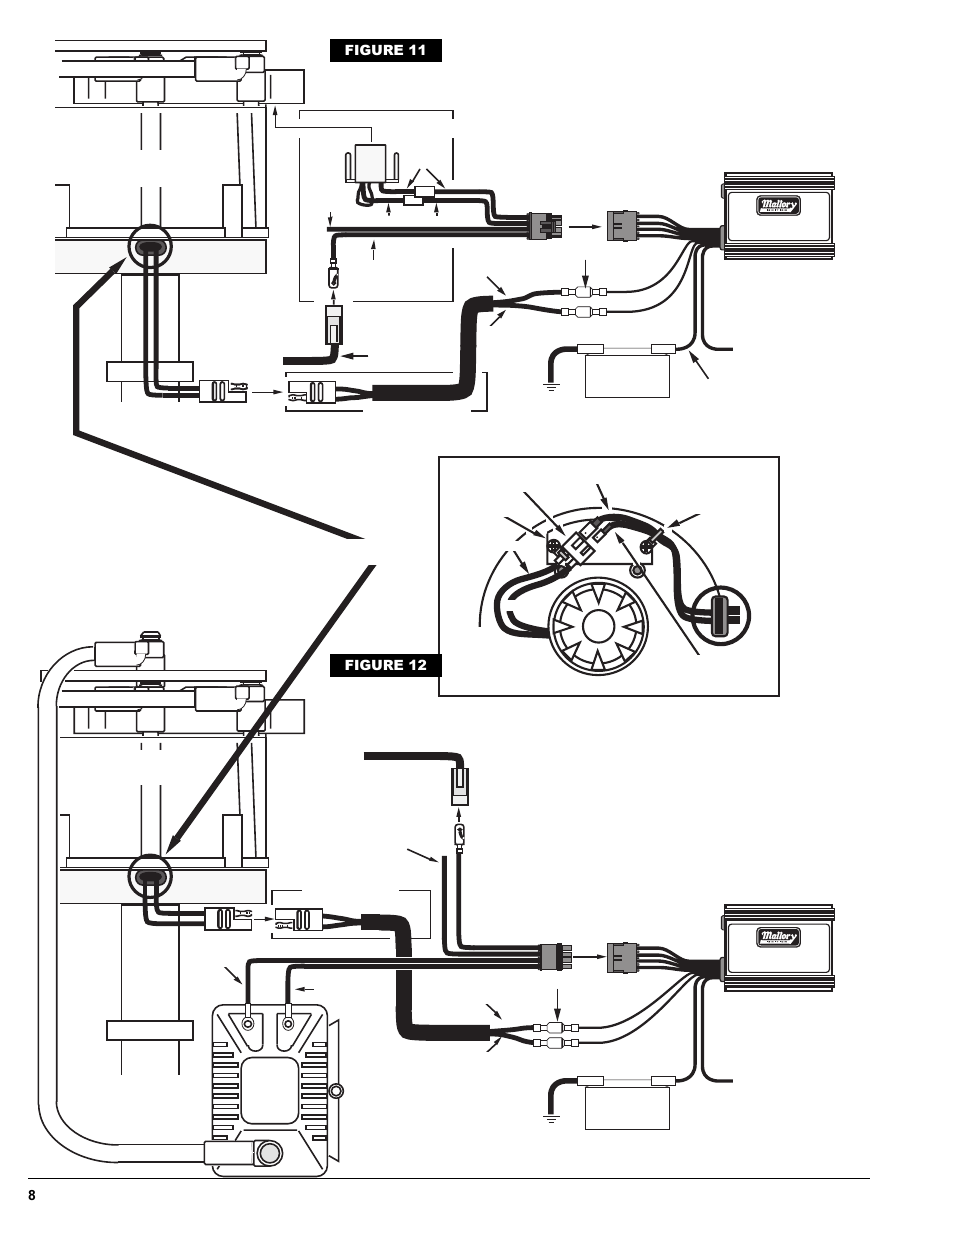 Charming Mallory Hyfire Wiring-diagram Pictures - Best Image Diagram ...